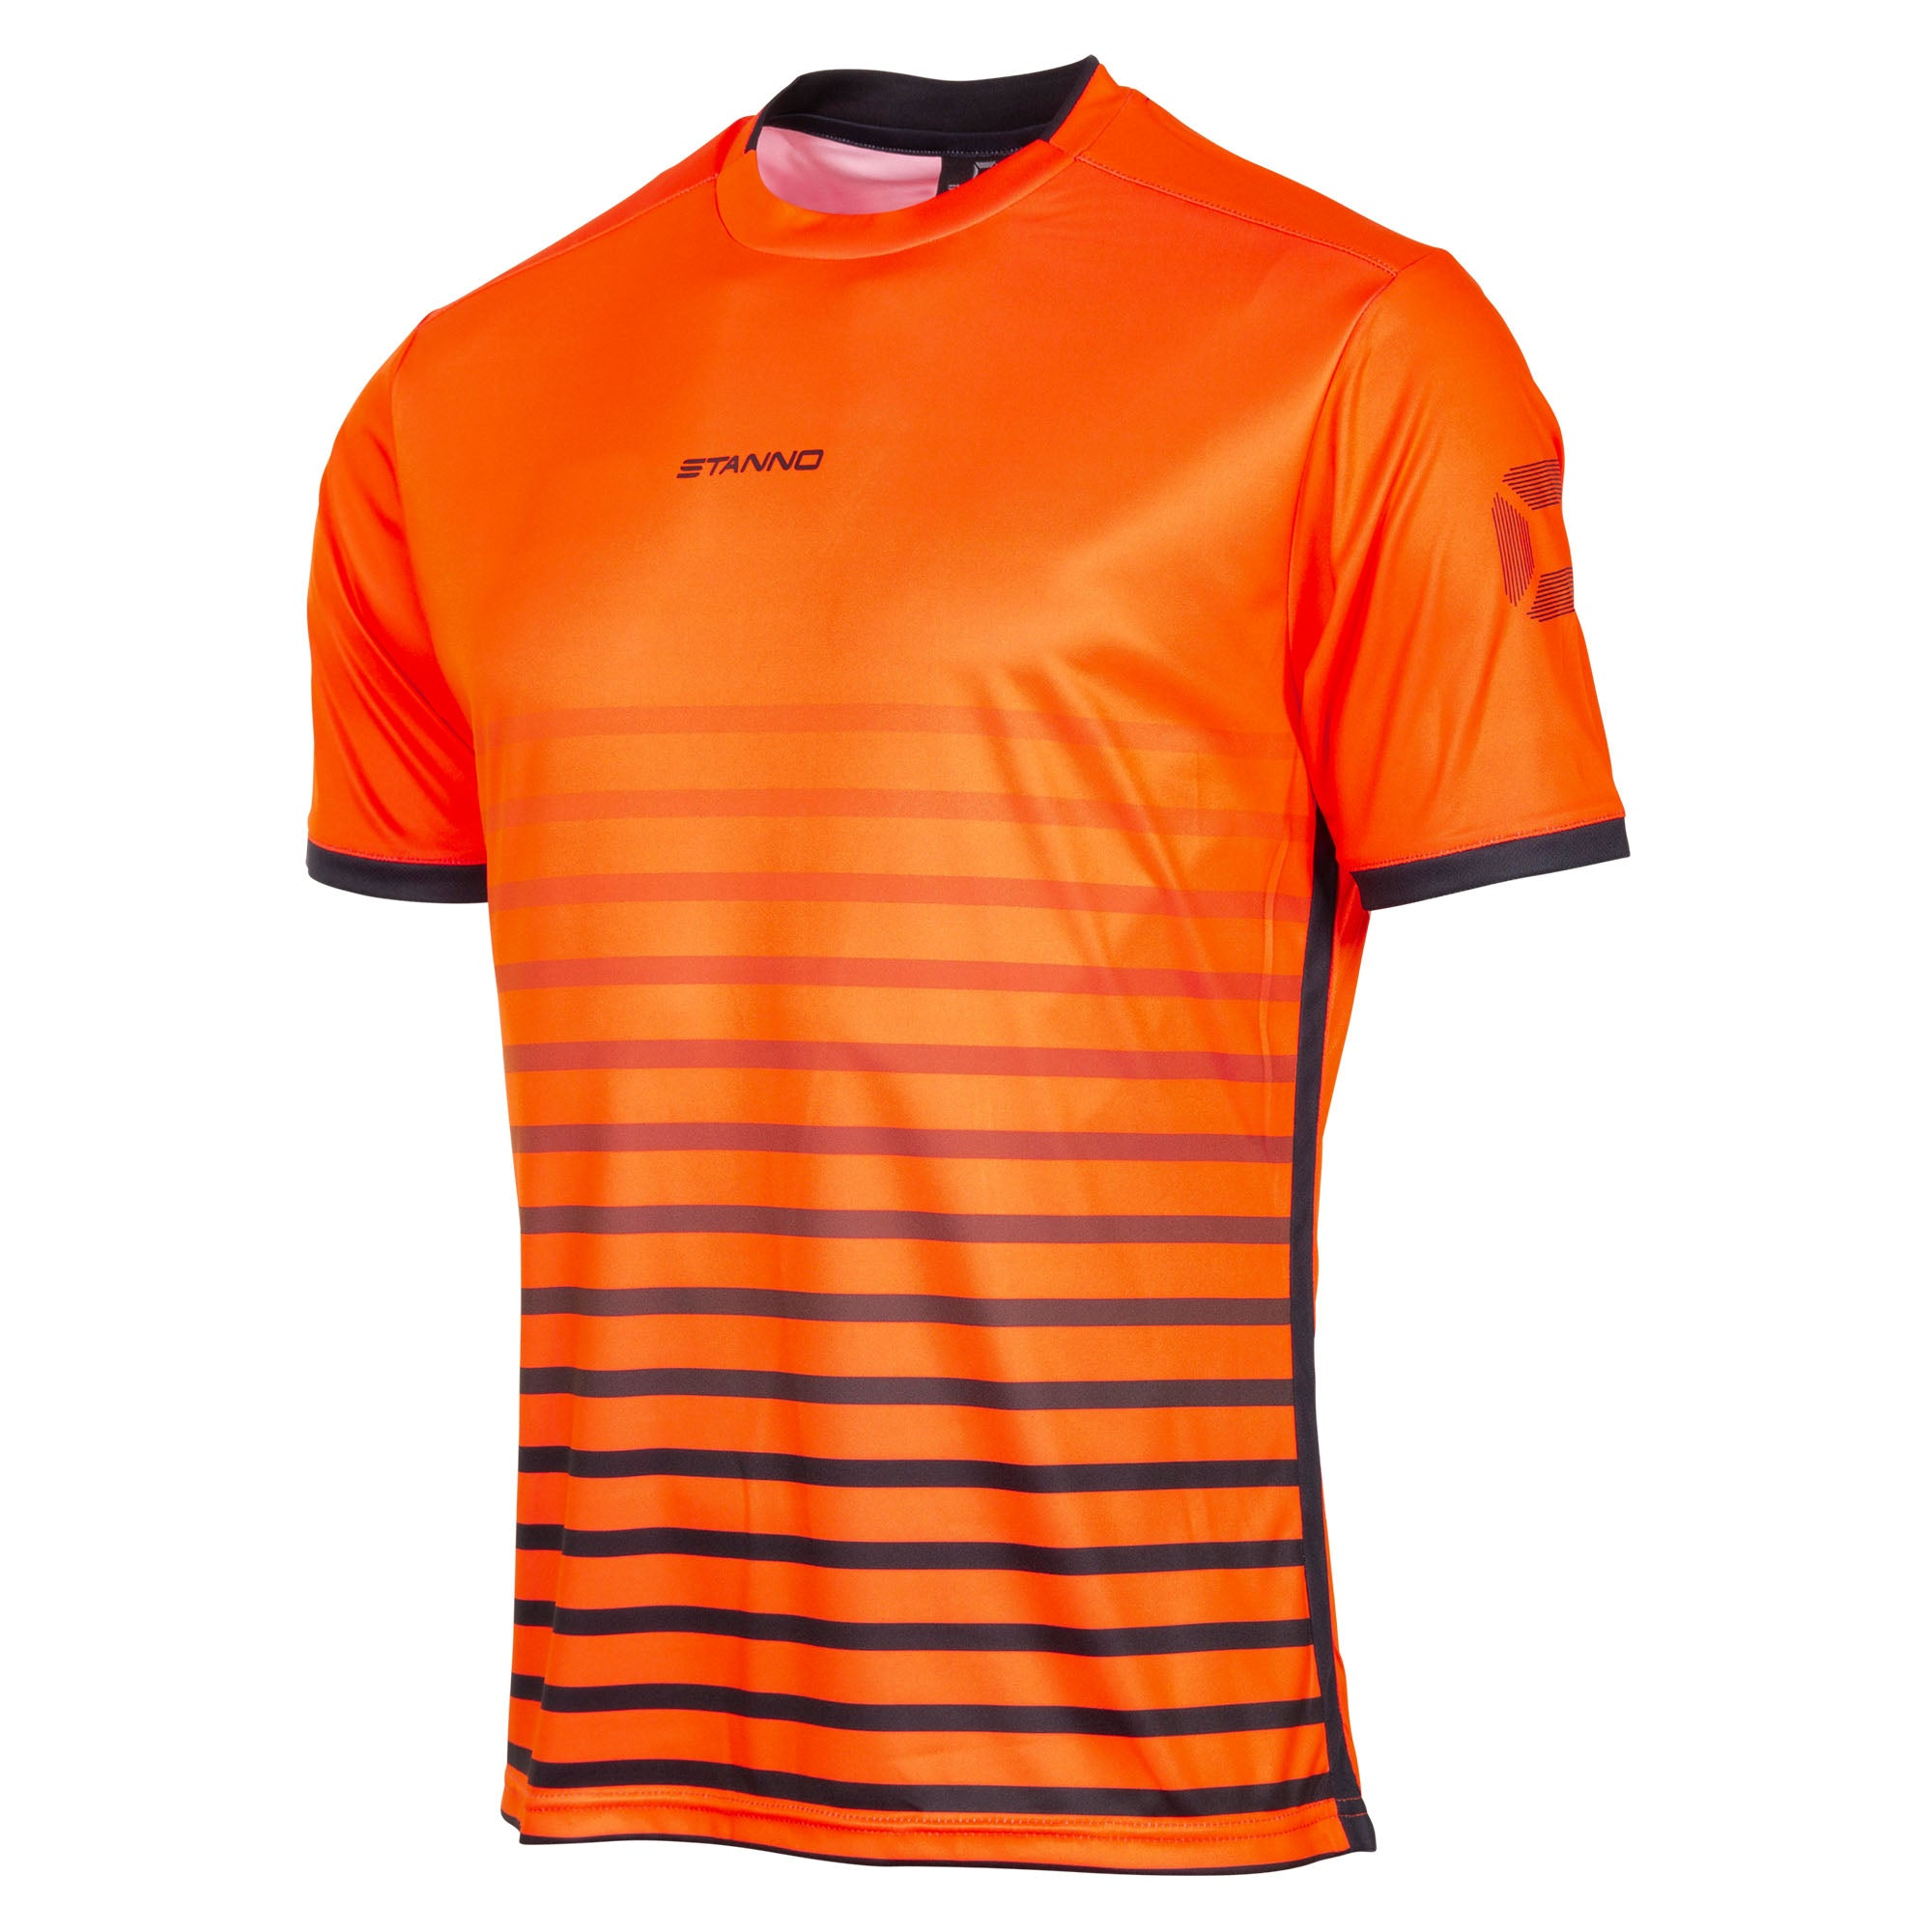 Stanno Fusion limited edition short sleeved shirt in shocking orange with black hooped graphic on the chest. Central Stanno text logo on the chest and Stadium logo on the sleeve. Contrast black panel on the sides and cuff.